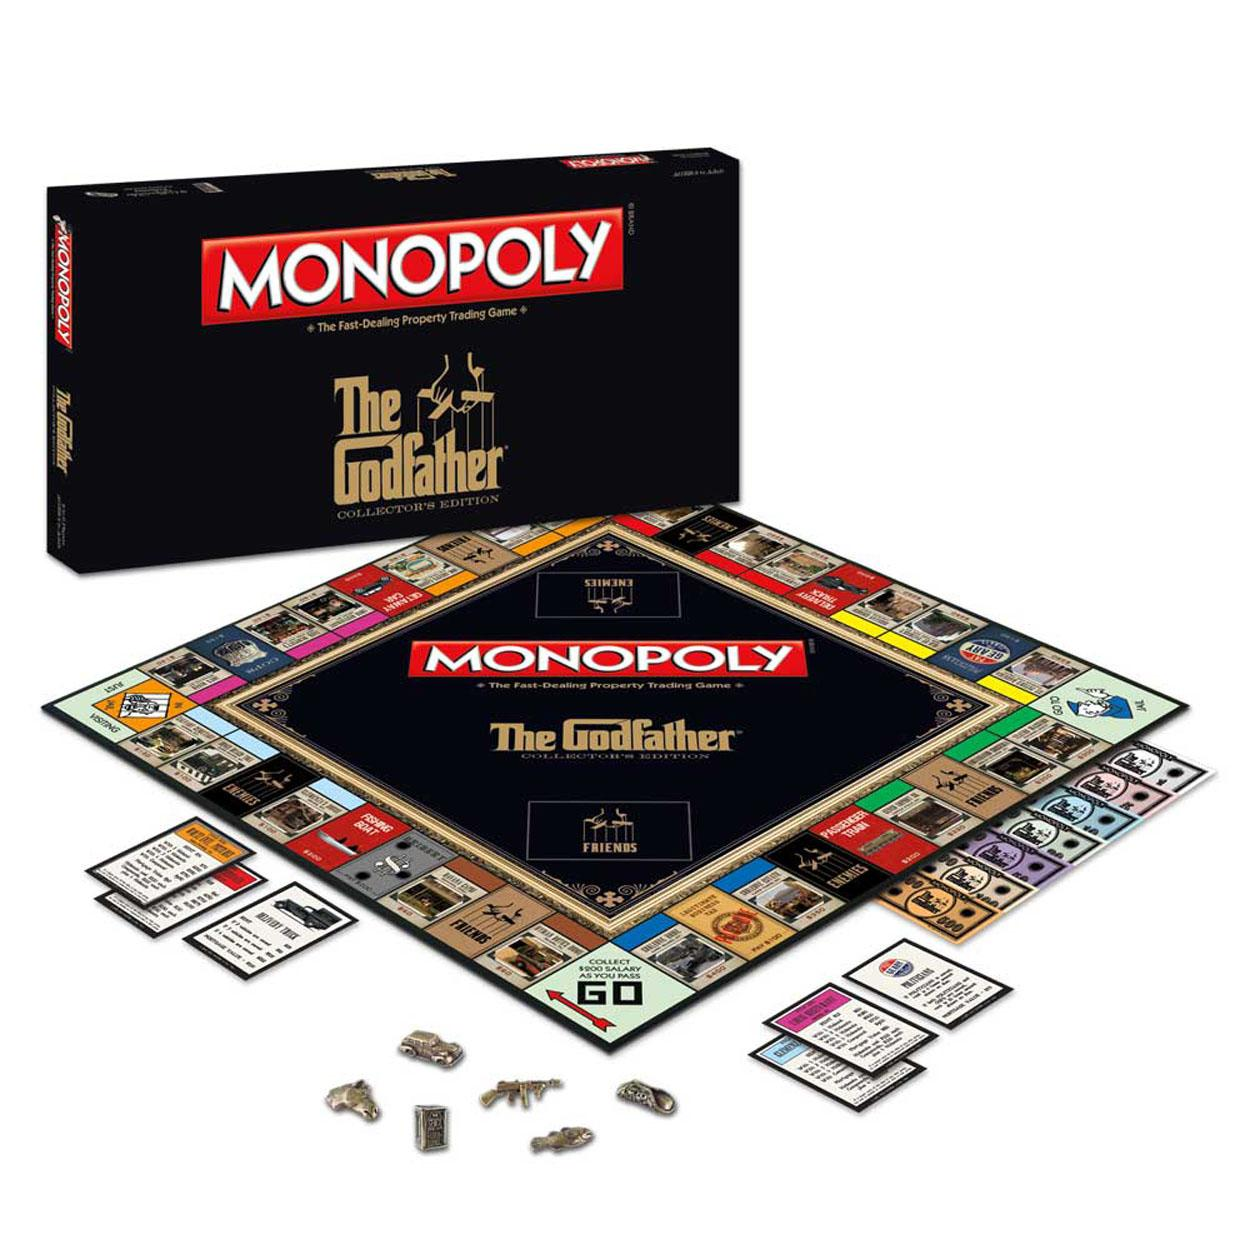 Monopoly The Godfather Edition Board Game by USAOPOLY, Inc